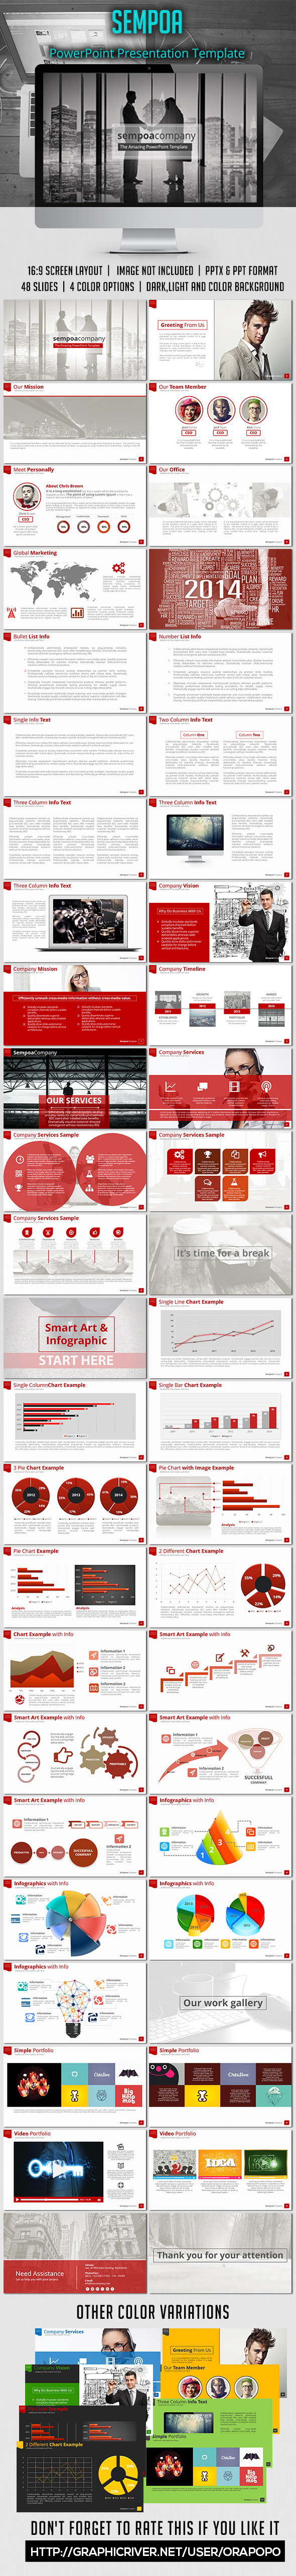 GraphicRiver Sempoa PowerPoint Presentation Template 8797946